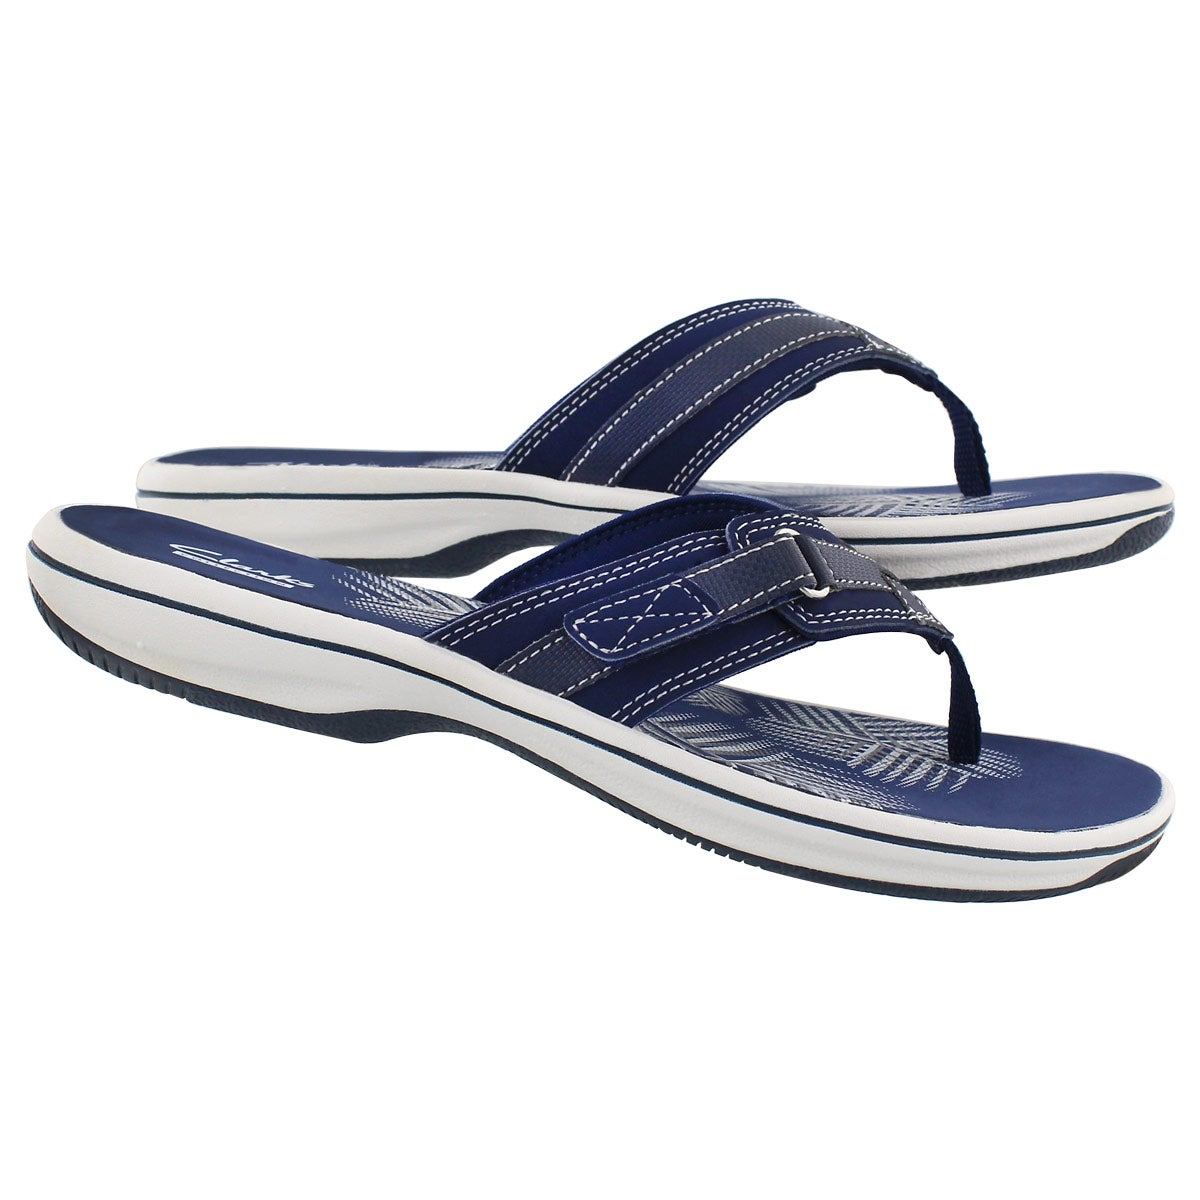 Lds Breeze Sea navy thong sandal